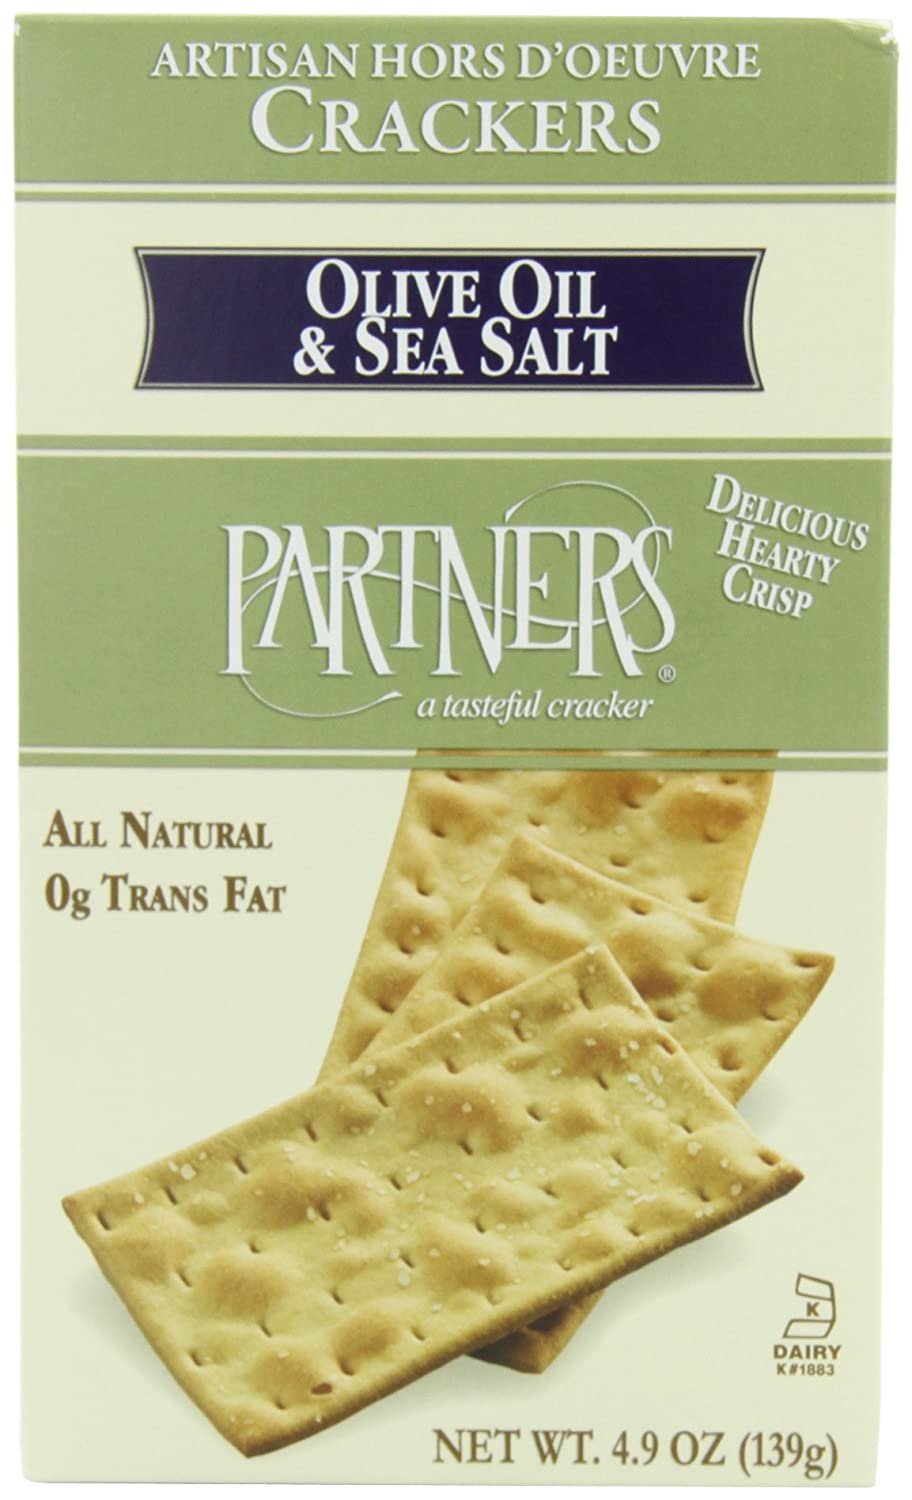 Partners Olive Oil & Sea Salt, Hors D'oeuvre Crackers, 4.9-Ounce Boxes (Pack of 6) Hors D'oeuvre Crackers